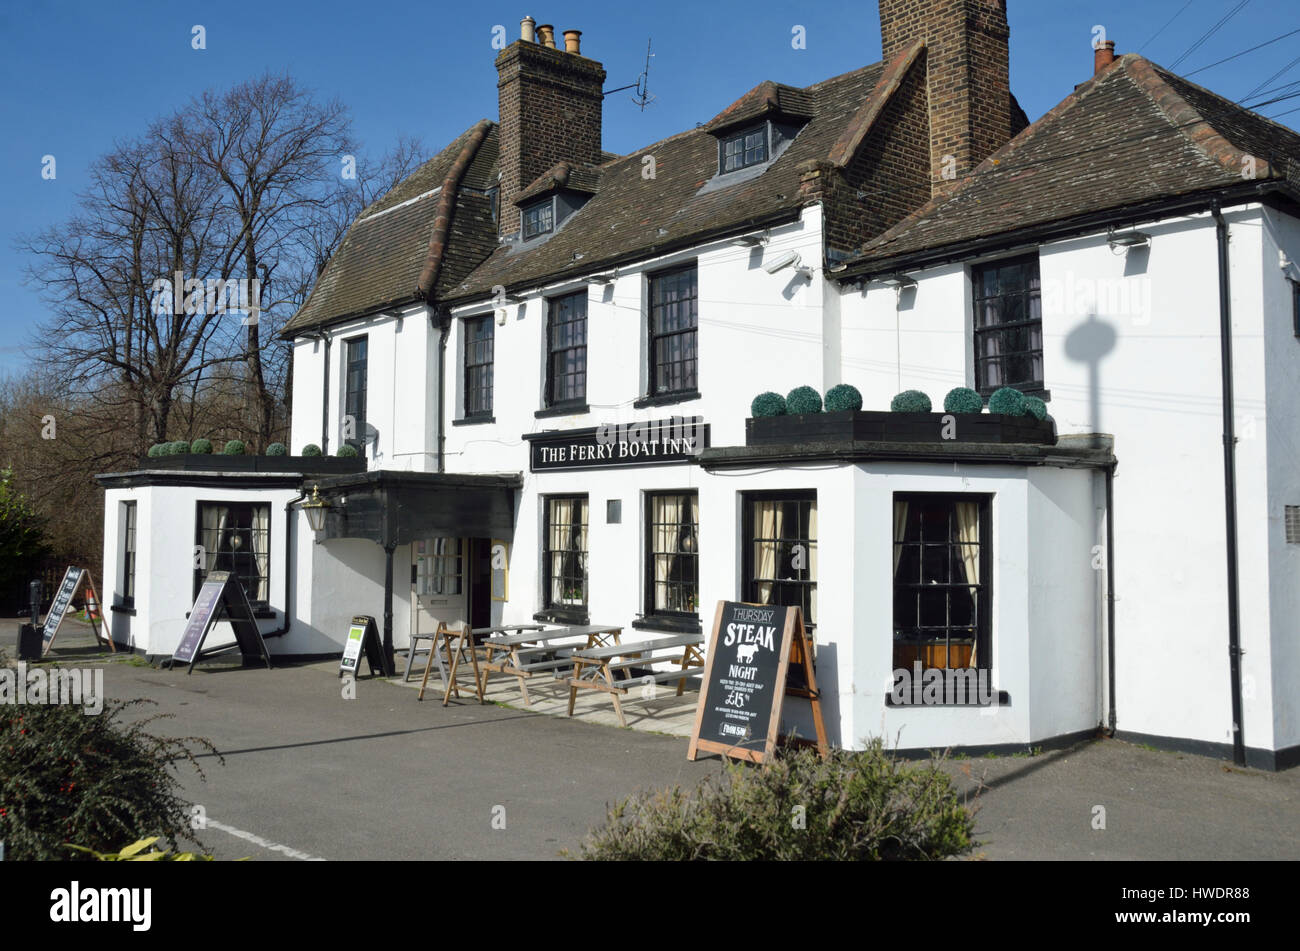 The Ferry Boat Inn pub in Tottenham Hale, London, UK. - Stock Image